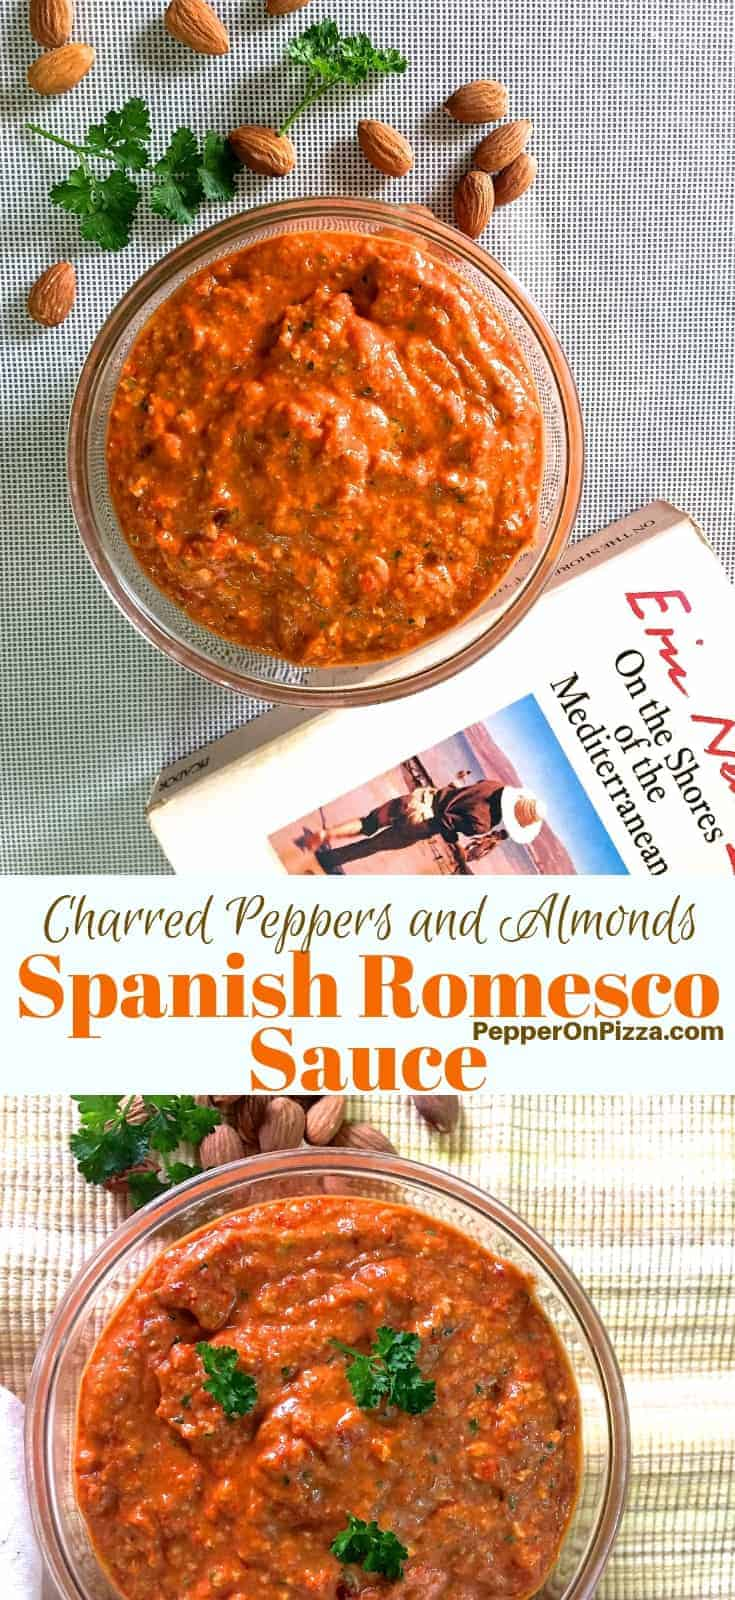 Spanish Romesco Sauce from charred red pepper, tomato and almonds. Easy to make and versatile to use. Serve with grilled veggies or chicken or with fish, or as a delicious pesto, with pasta or as a spread.